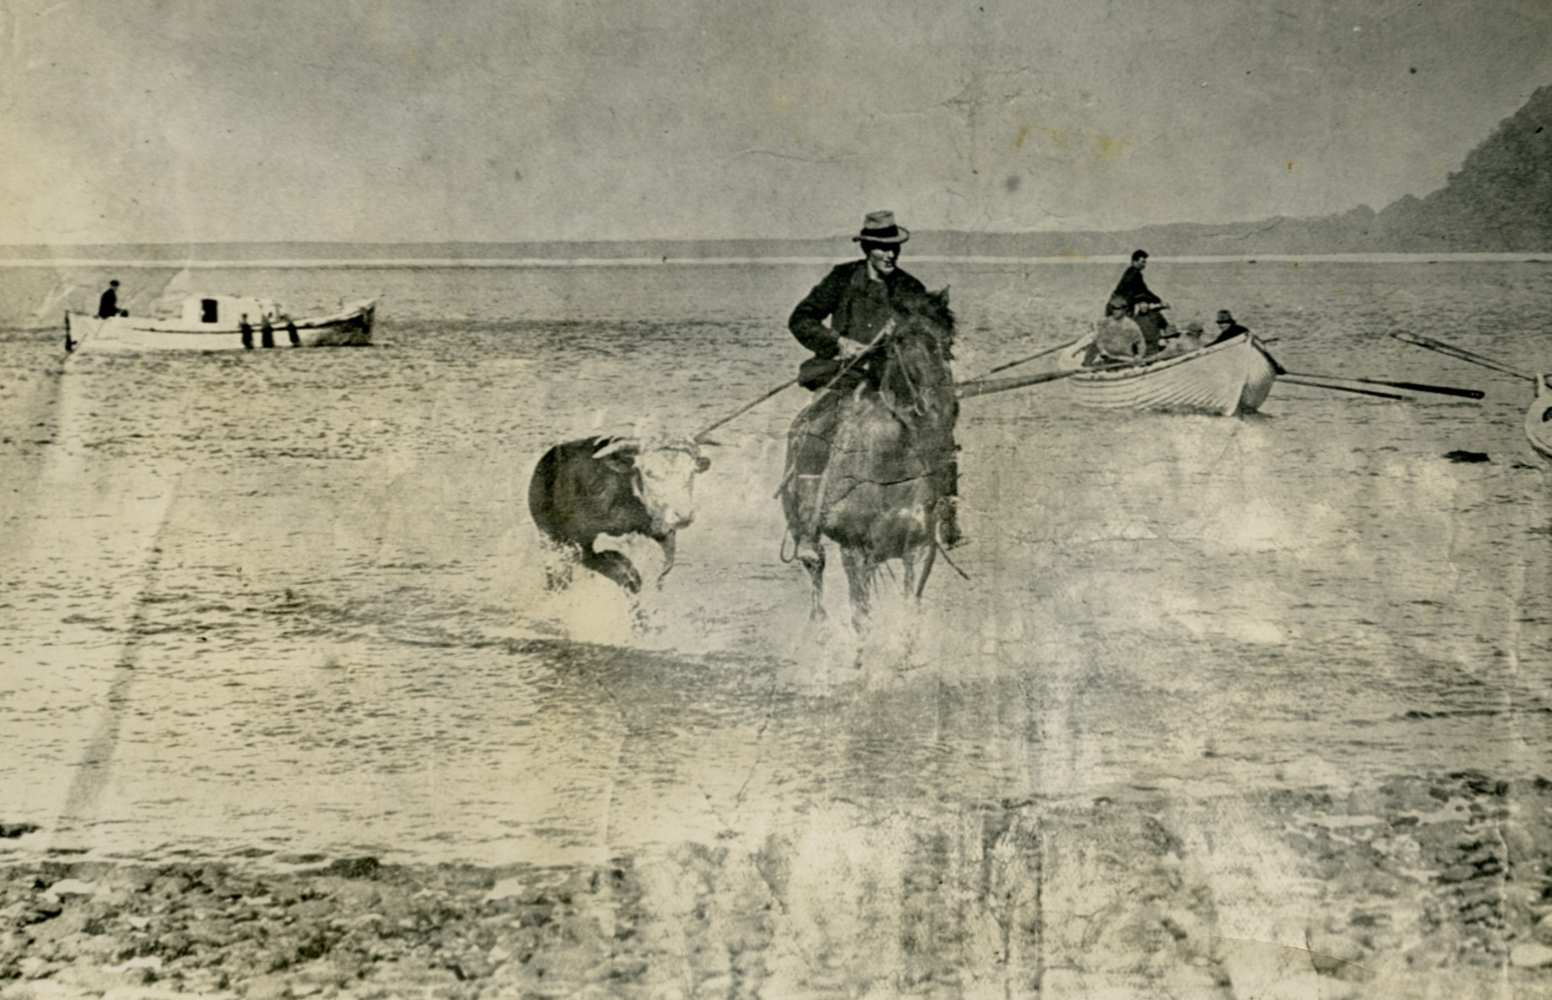 Rider on a horse  leading a bull through the waves at Jackson's Bay